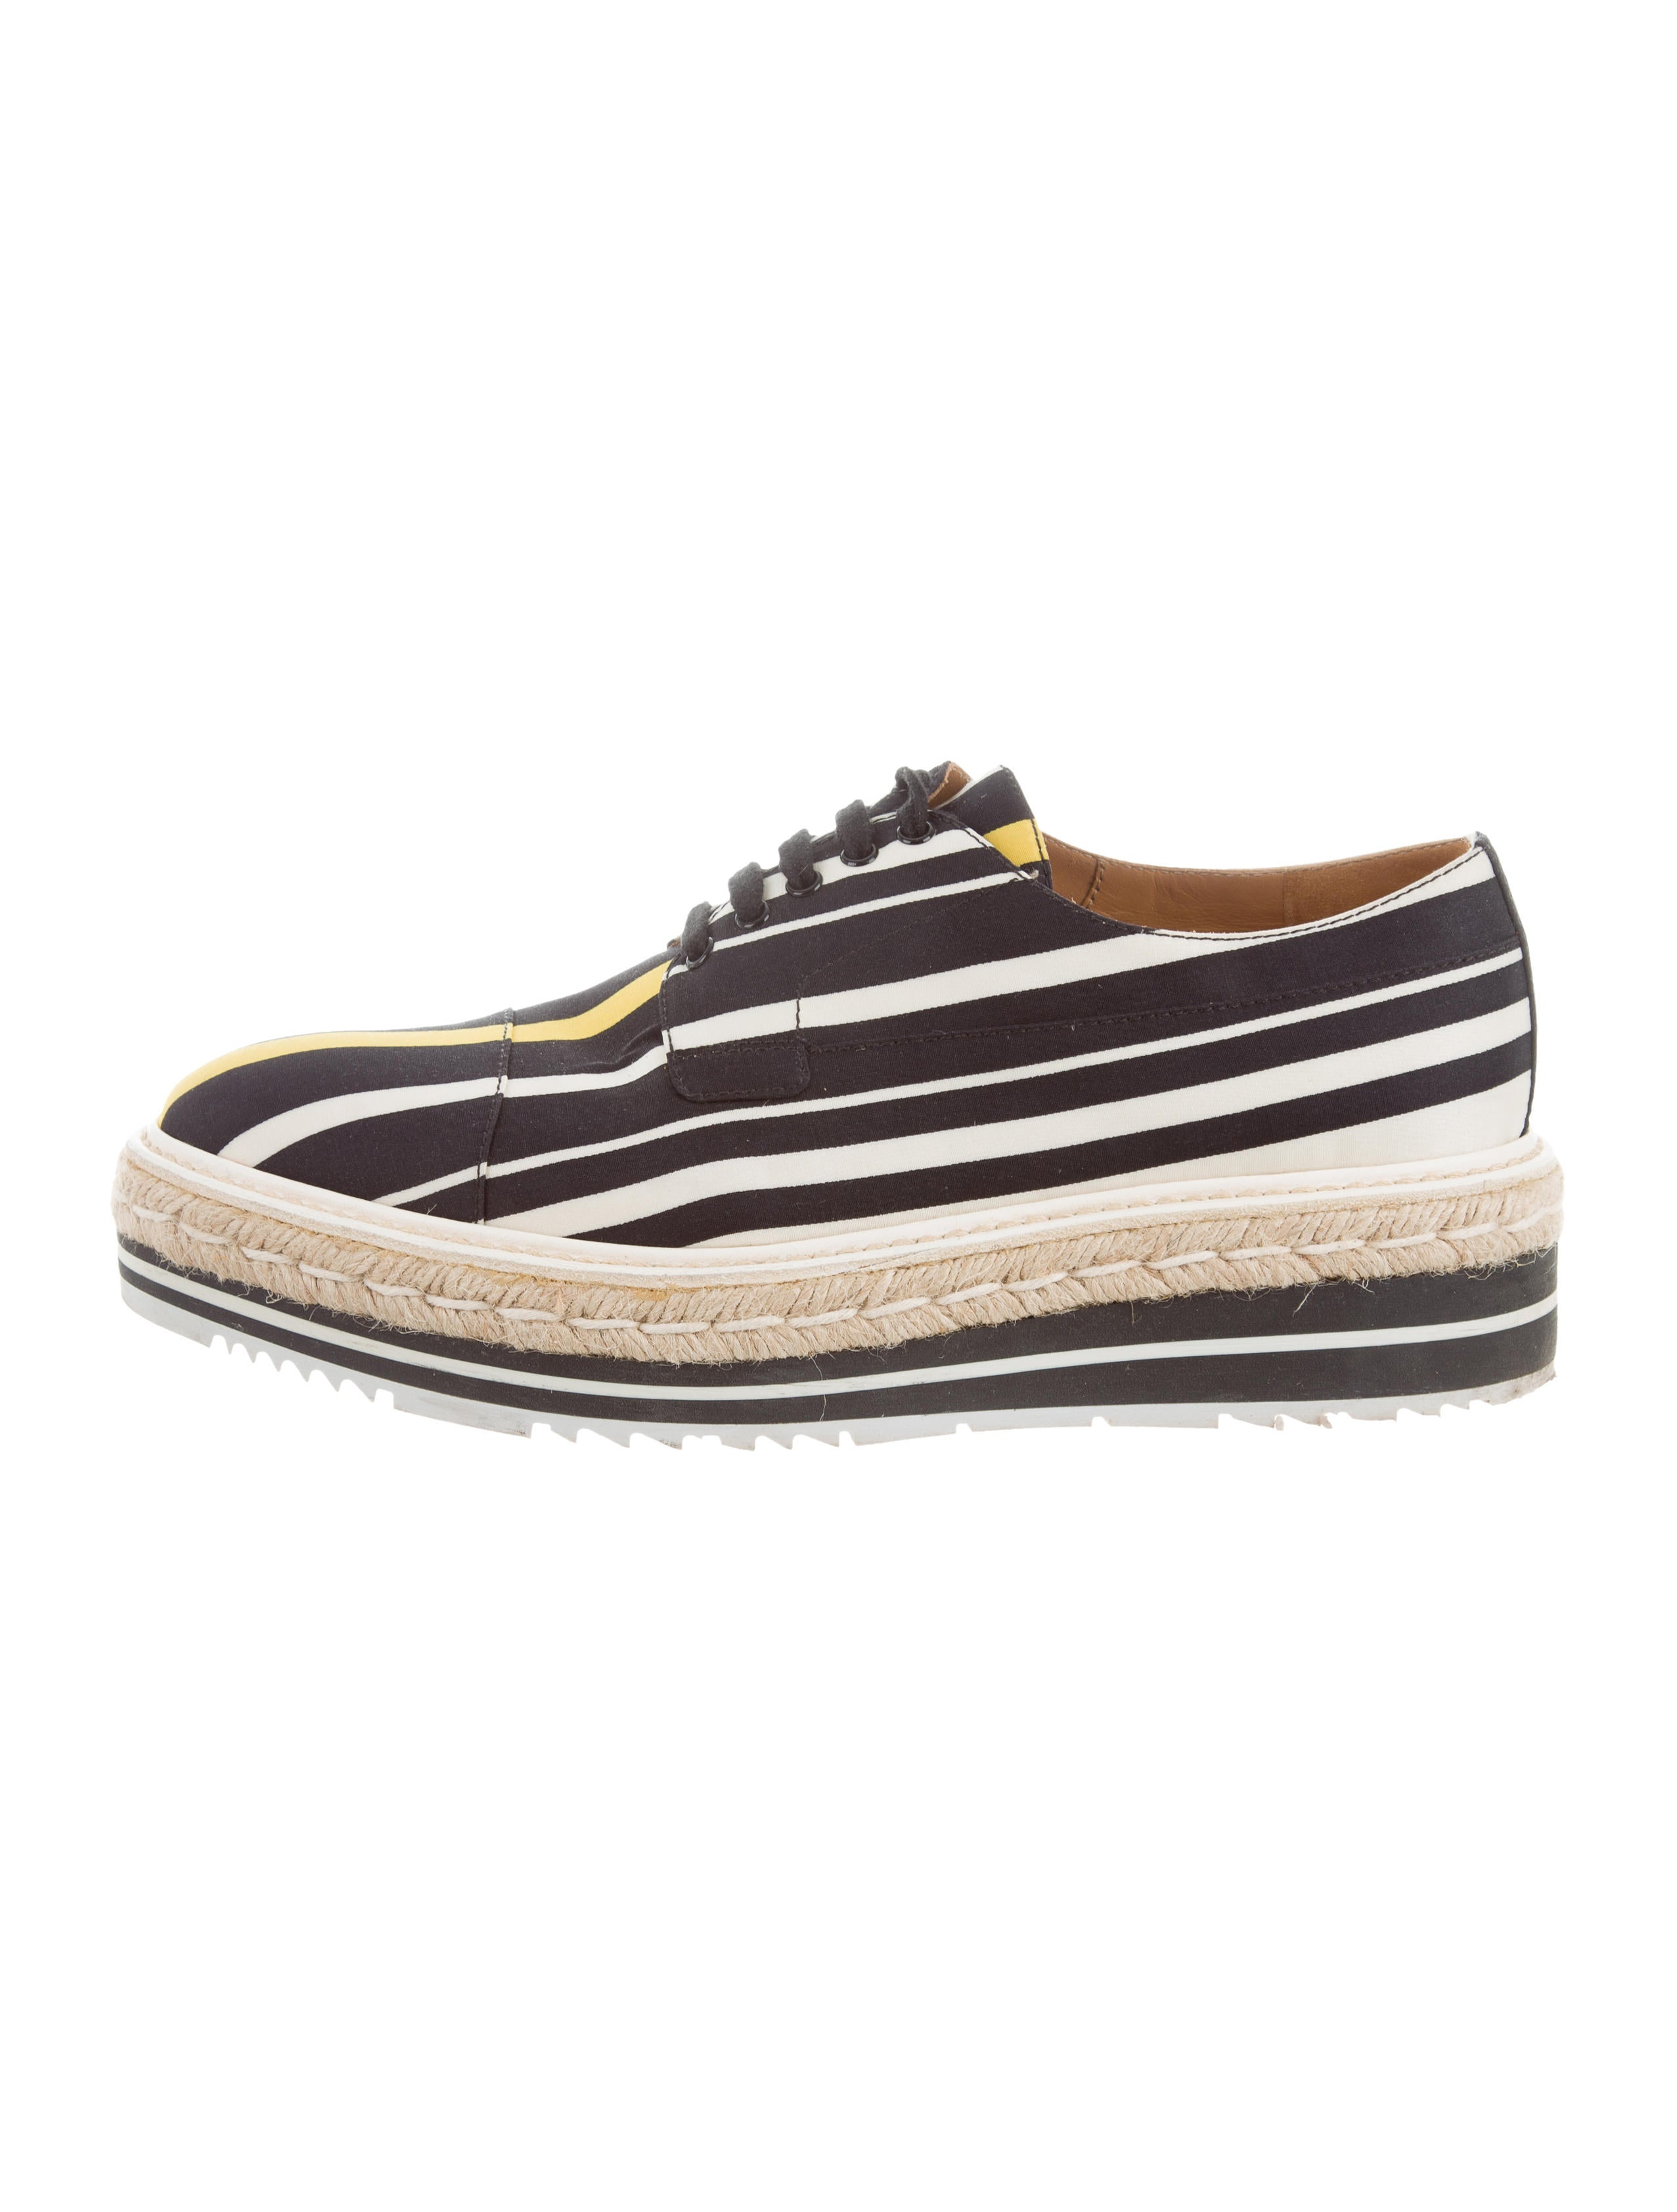 Prada Canvas Flatform Oxfords sale cheap online sale websites free shipping low price sale choice big discount sale online mjfgLAaBE